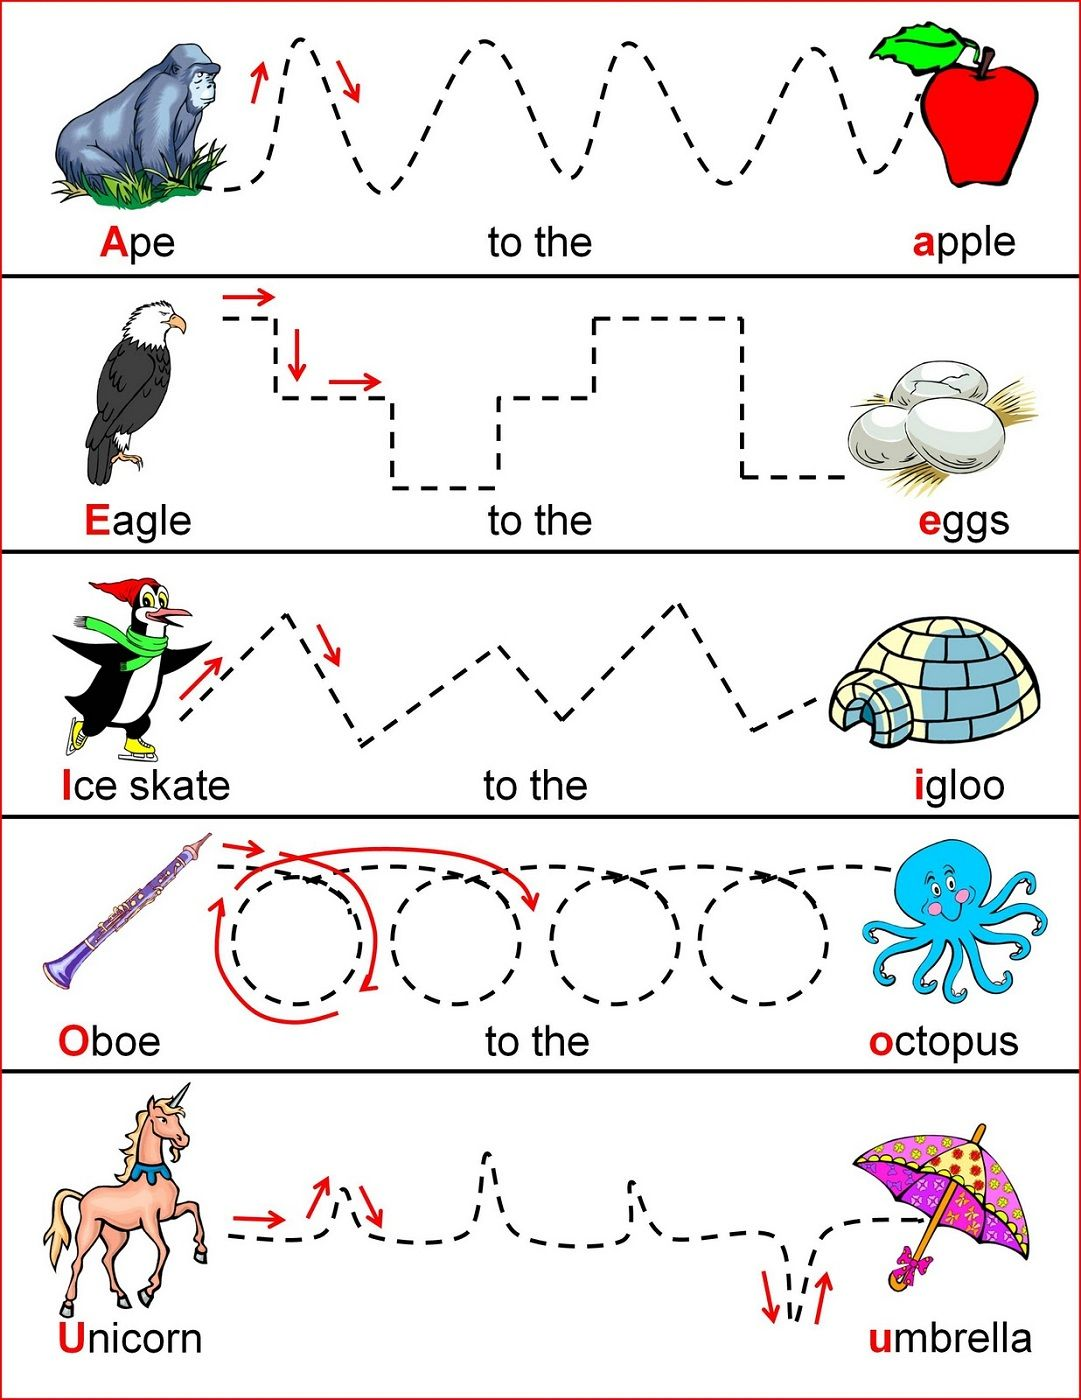 4 Year Old Worksheets Printable 4 year old activities